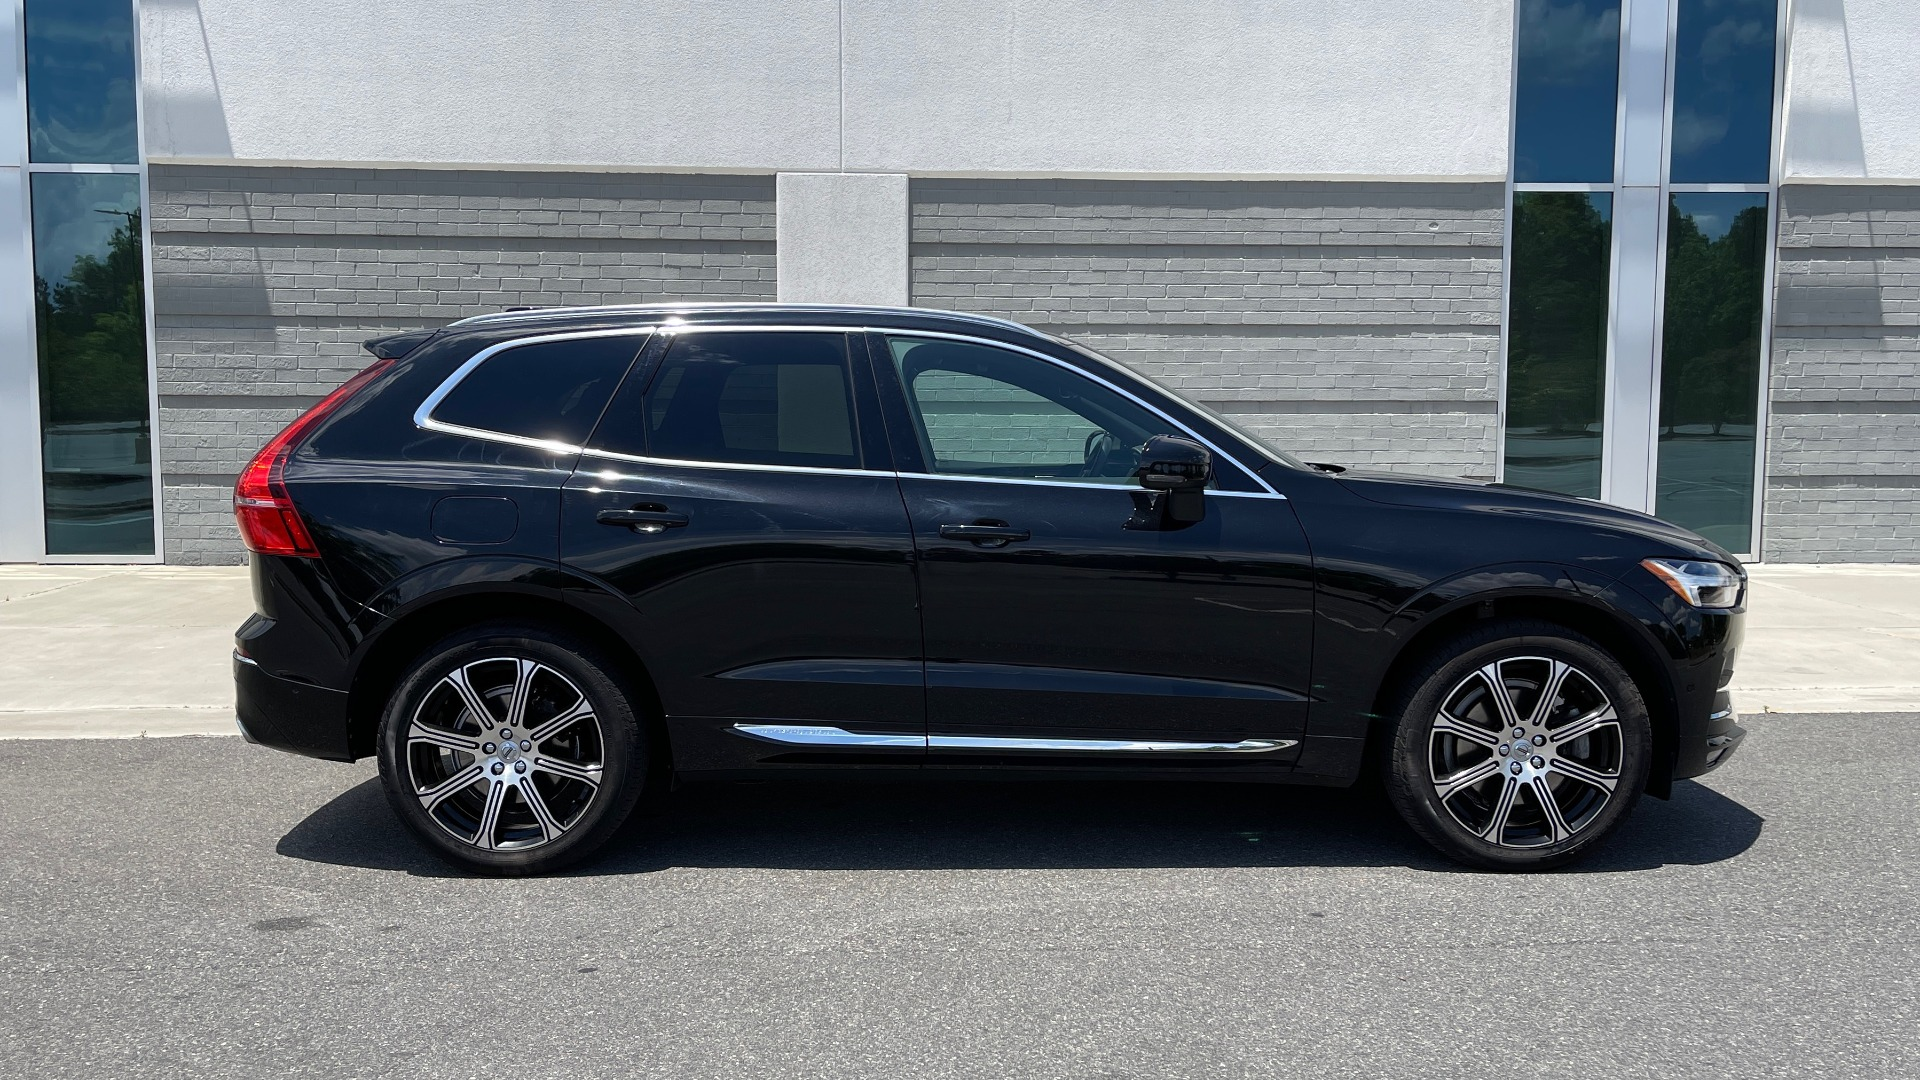 Used 2018 Volvo XC60 INSCRIPTION 2.0L TURBO SUV / AWD / NAV / SUNROOF / REARVIEW for sale $38,795 at Formula Imports in Charlotte NC 28227 7